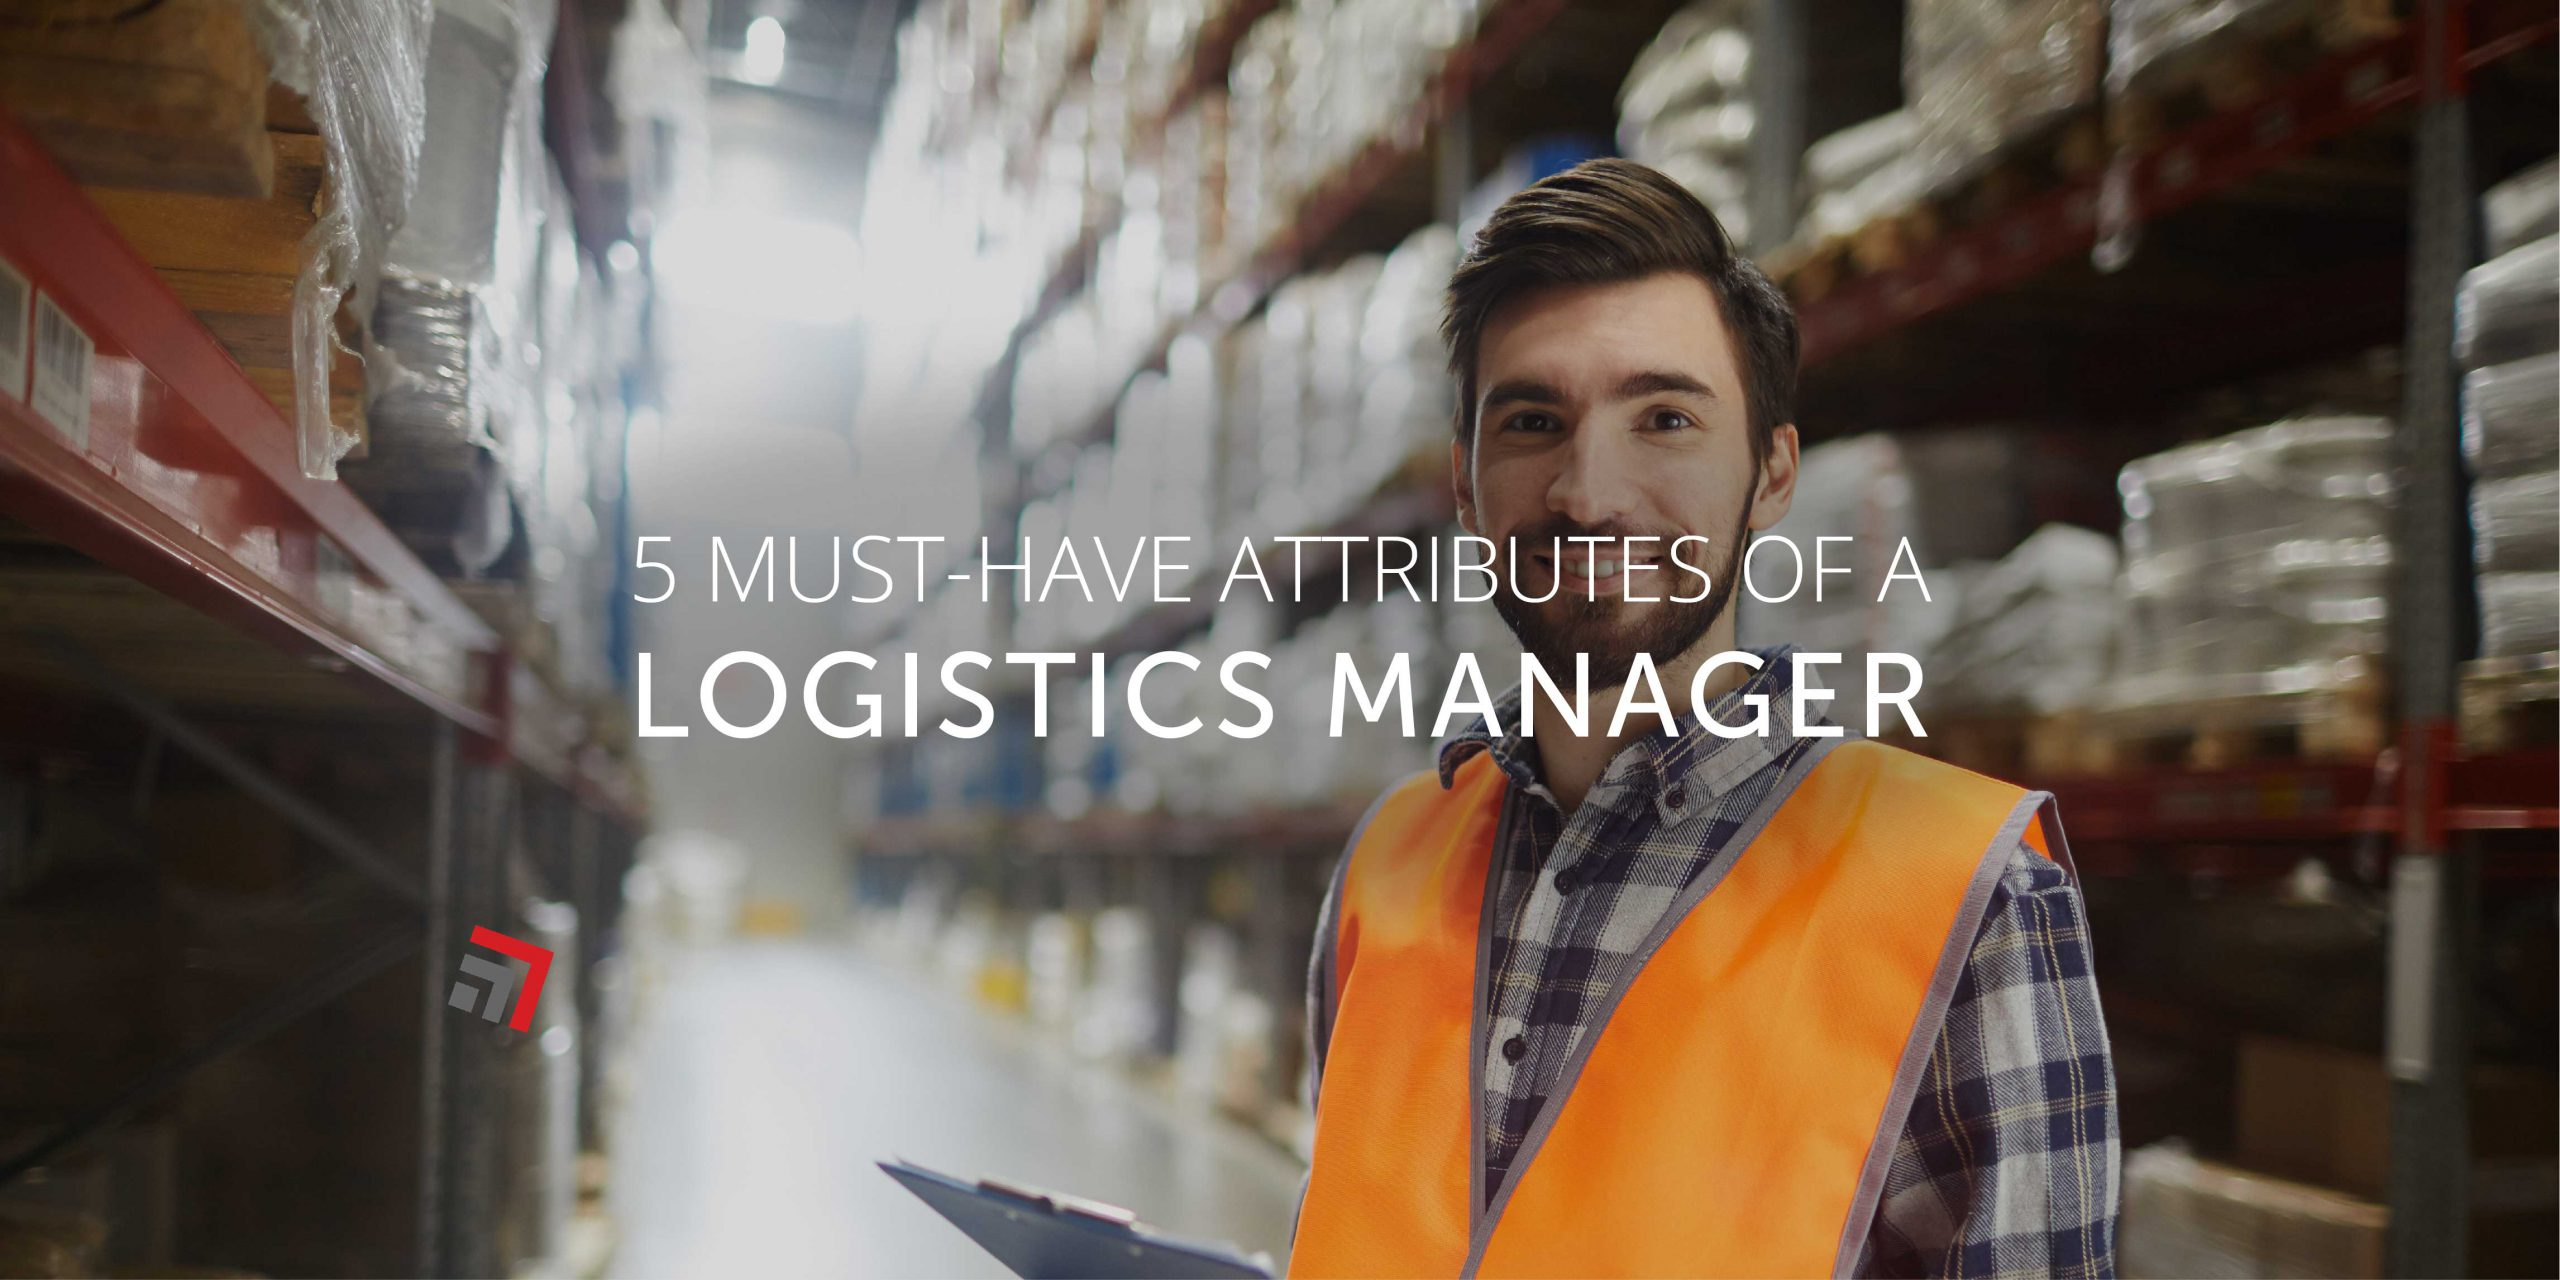 5 Must Have Attributes of a Logistics Manager